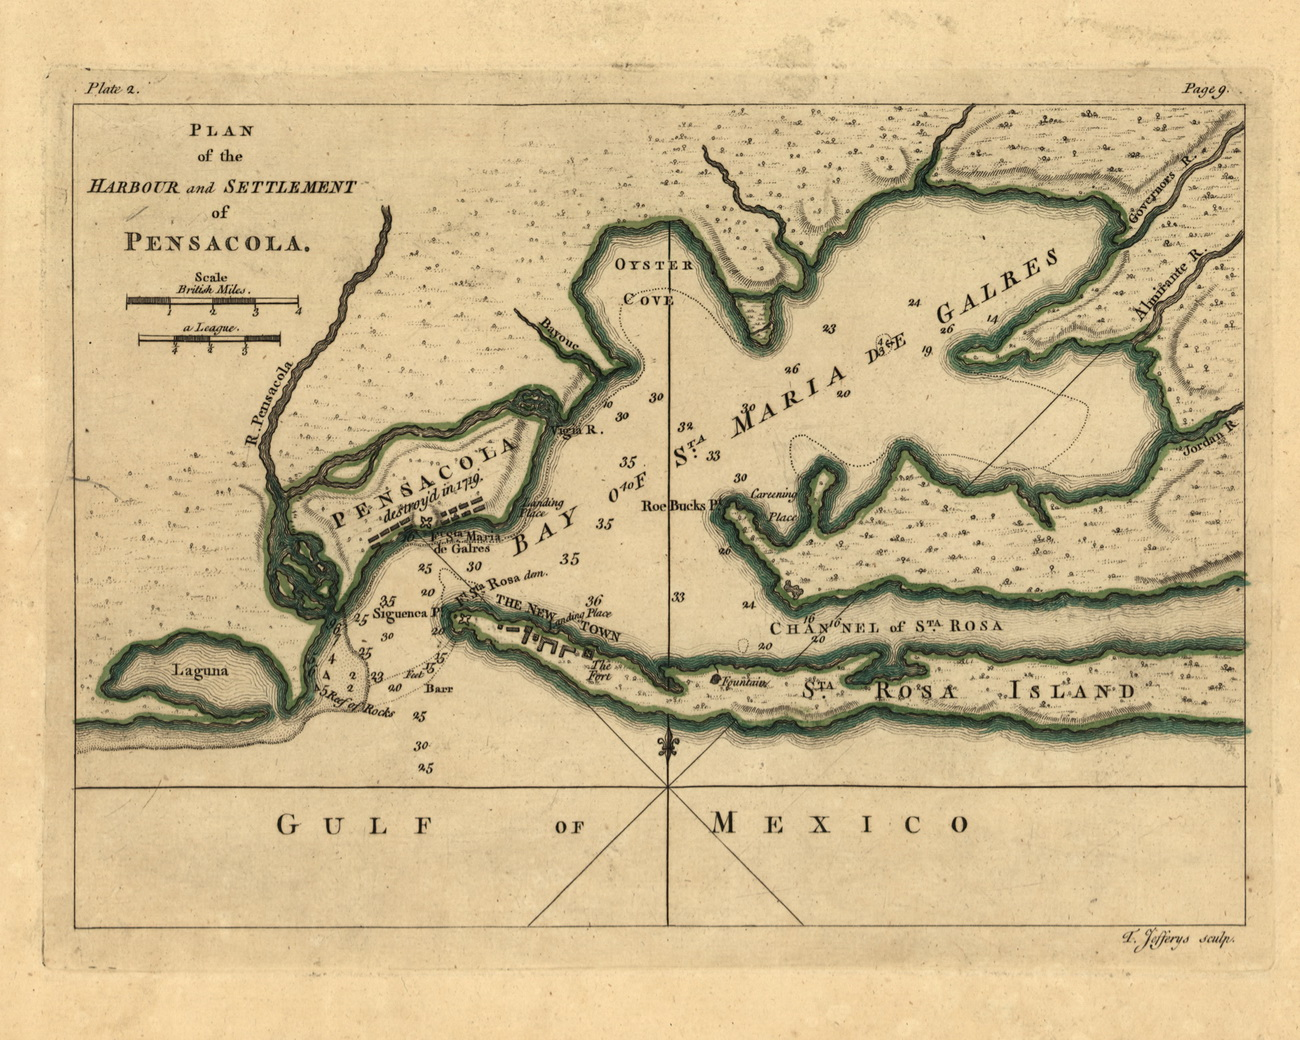 pensacola harbour and settlement 1768 old map reprint usa jefferys 1768 atlas 42b old maps pensacola harbour and settlement 1768 old map reprint usa jefferys 1768 atlas 42b old maps